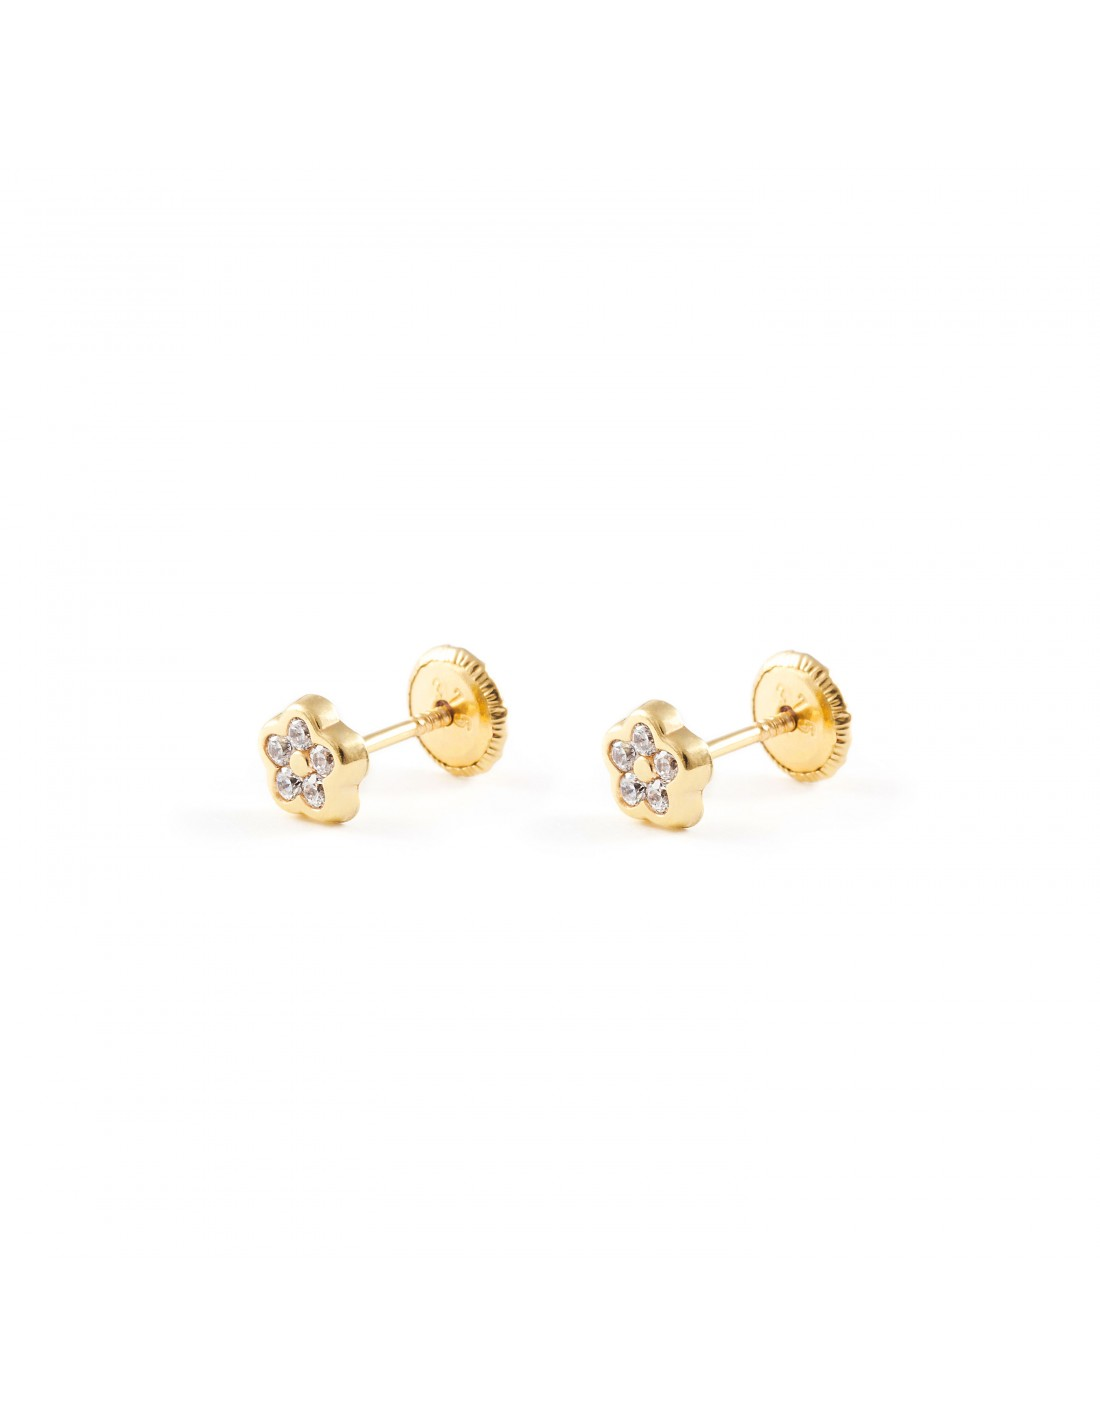 boucles d 39 oreilles enfant fleur avec zircon or jaune 9 carats. Black Bedroom Furniture Sets. Home Design Ideas